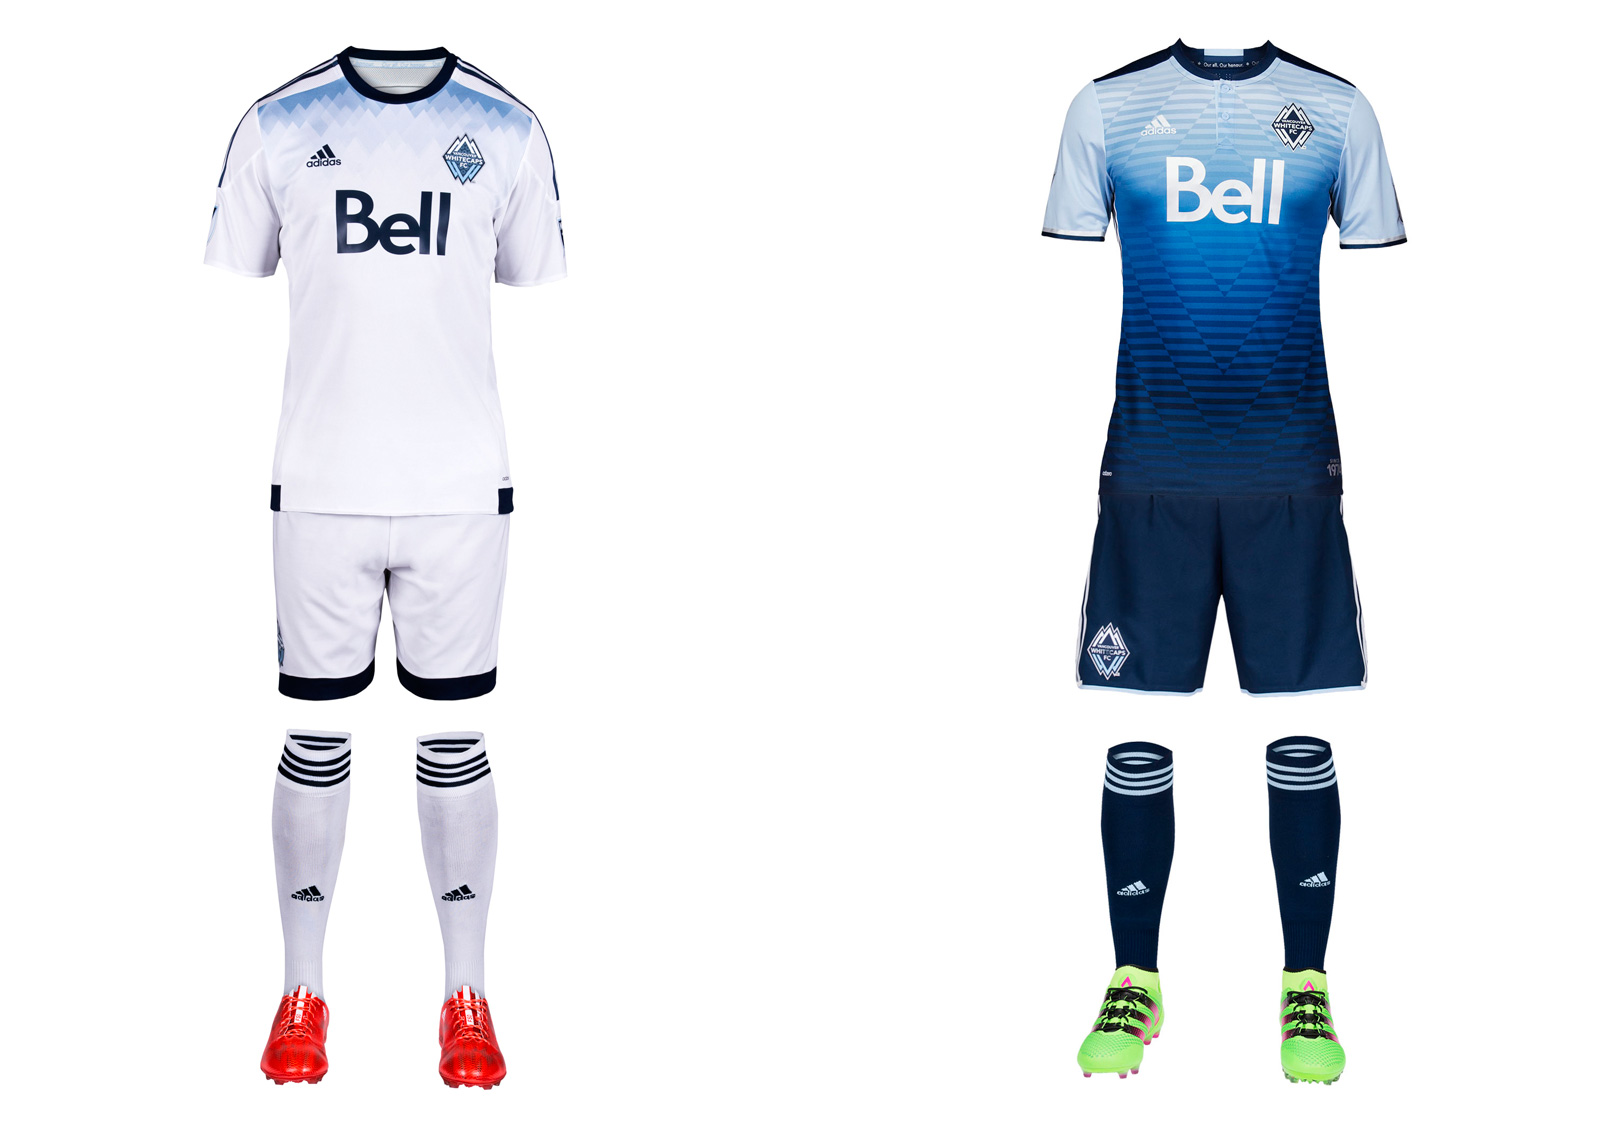 Vancouver Whitecaps 2016 MLS uniforms